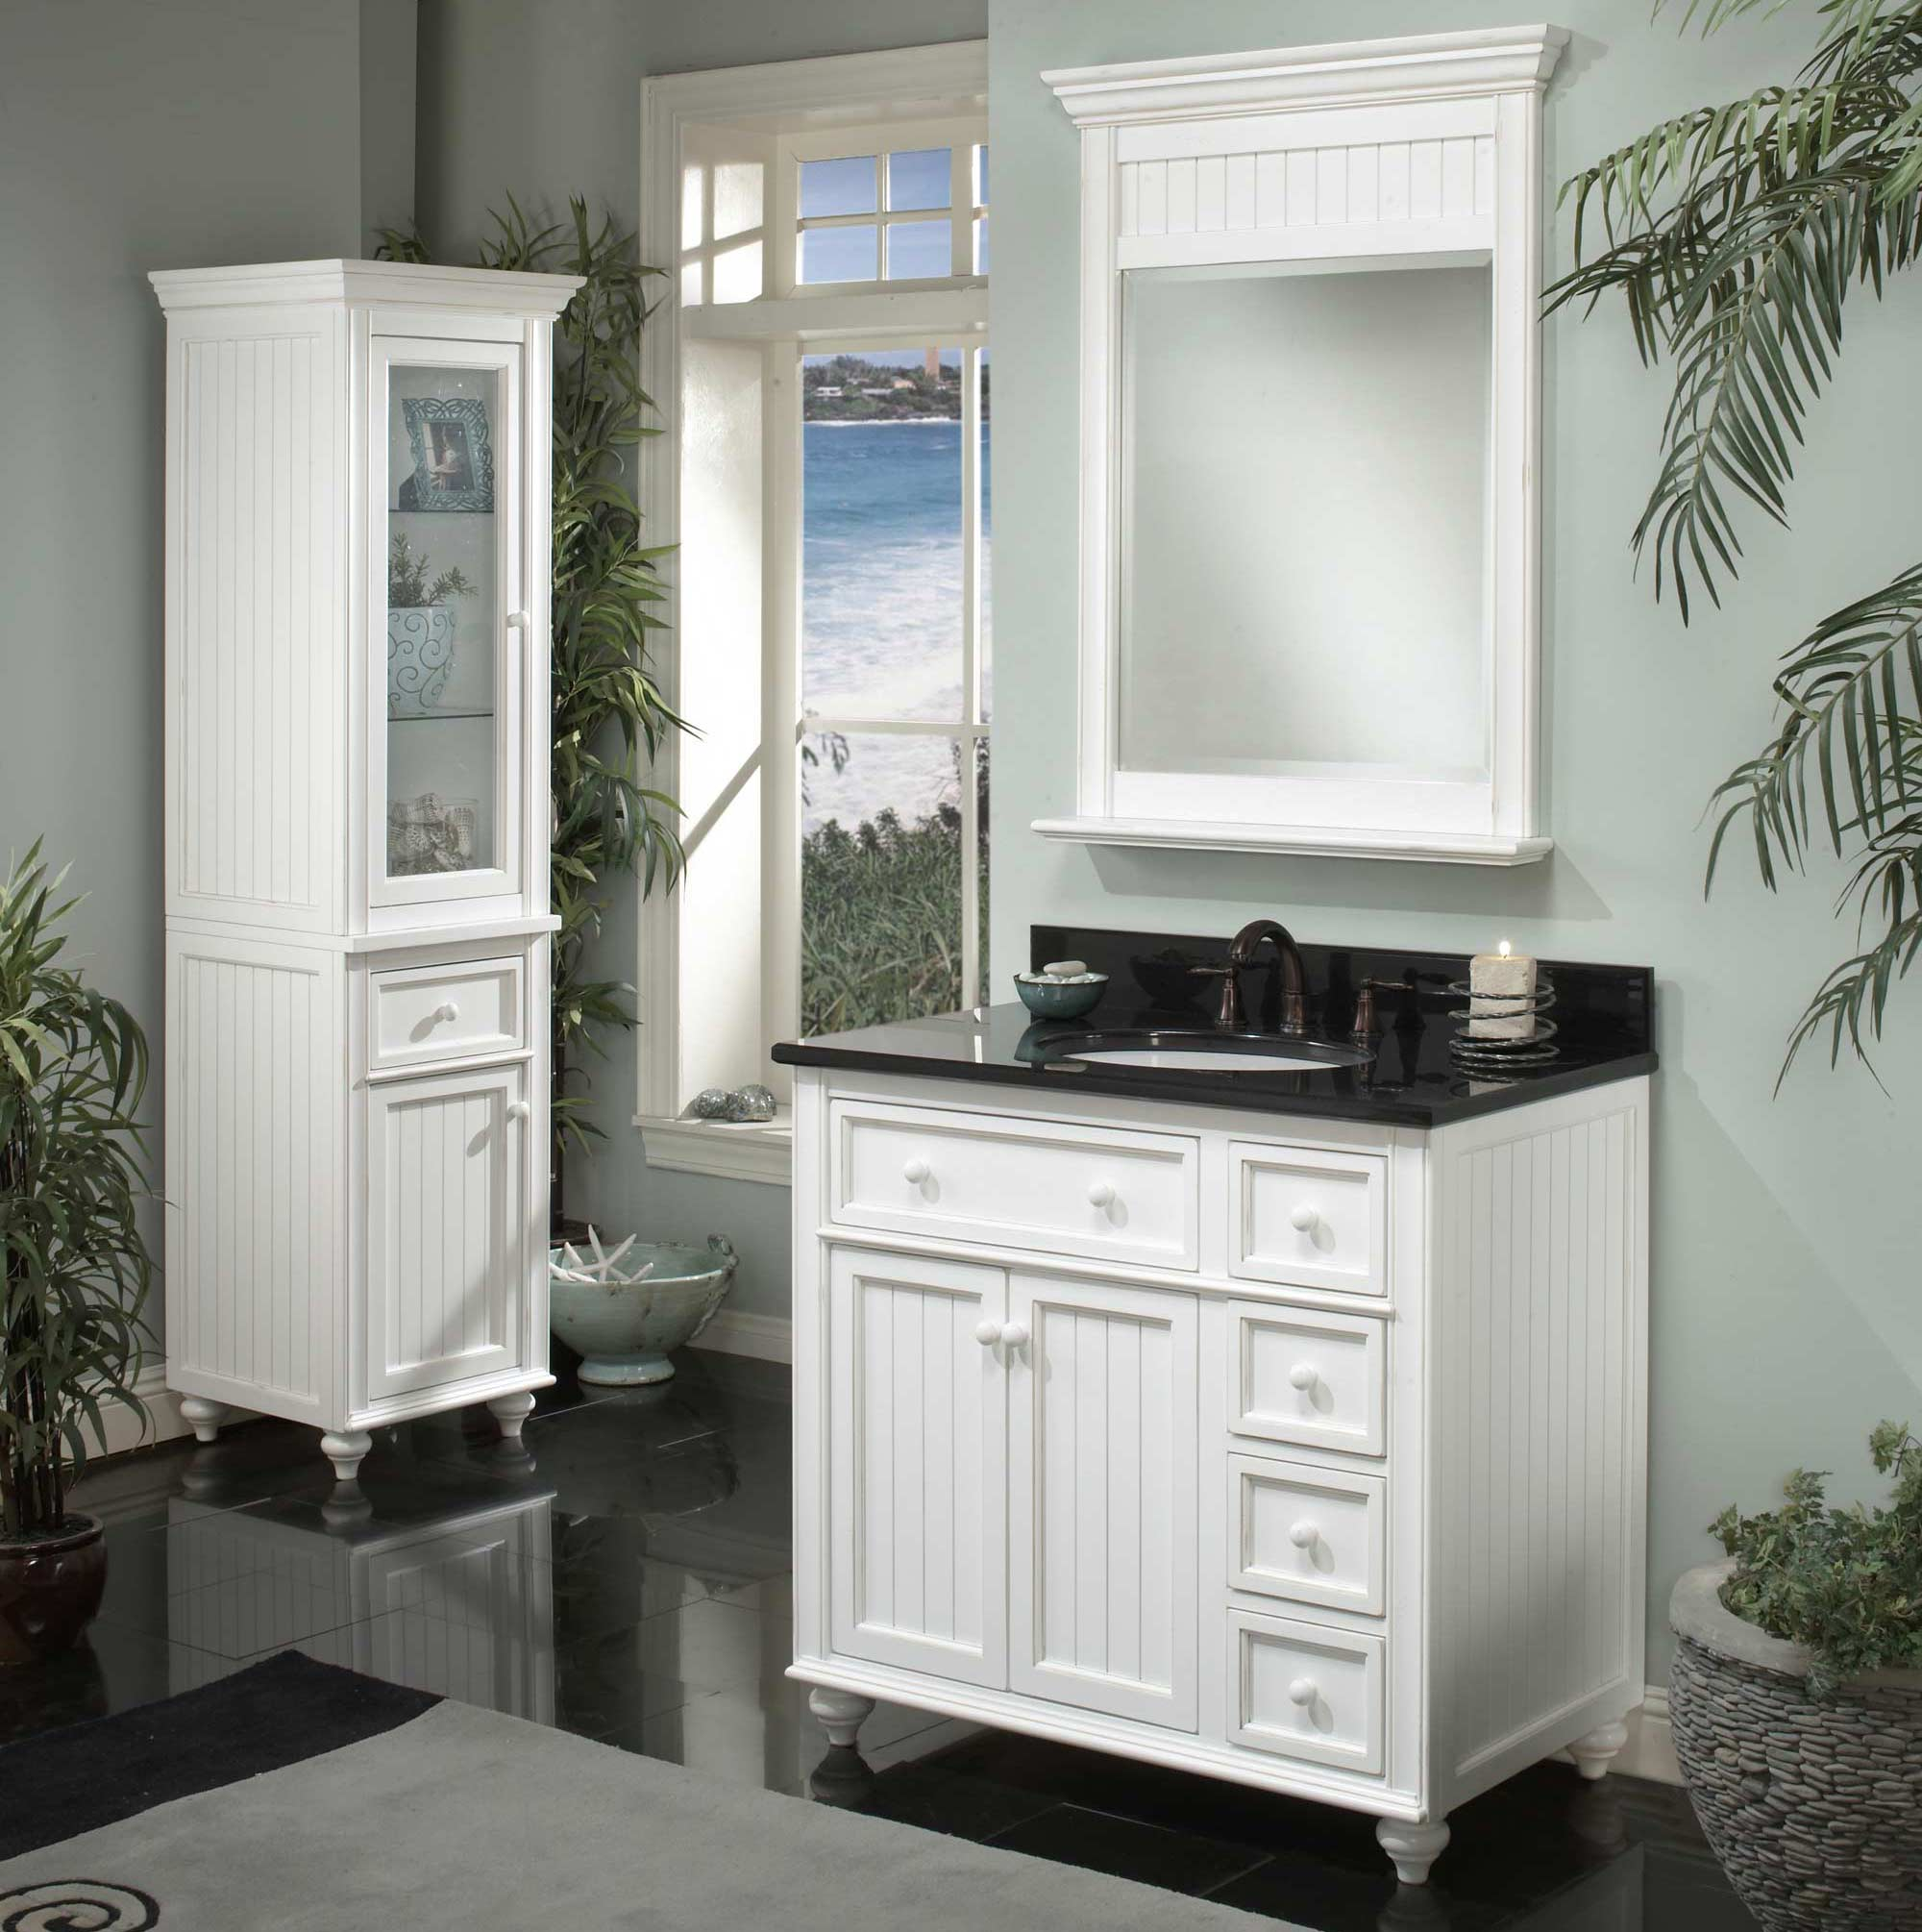 Top White Bathroom Vanities 2000 x 2010 · 261 kB · jpeg